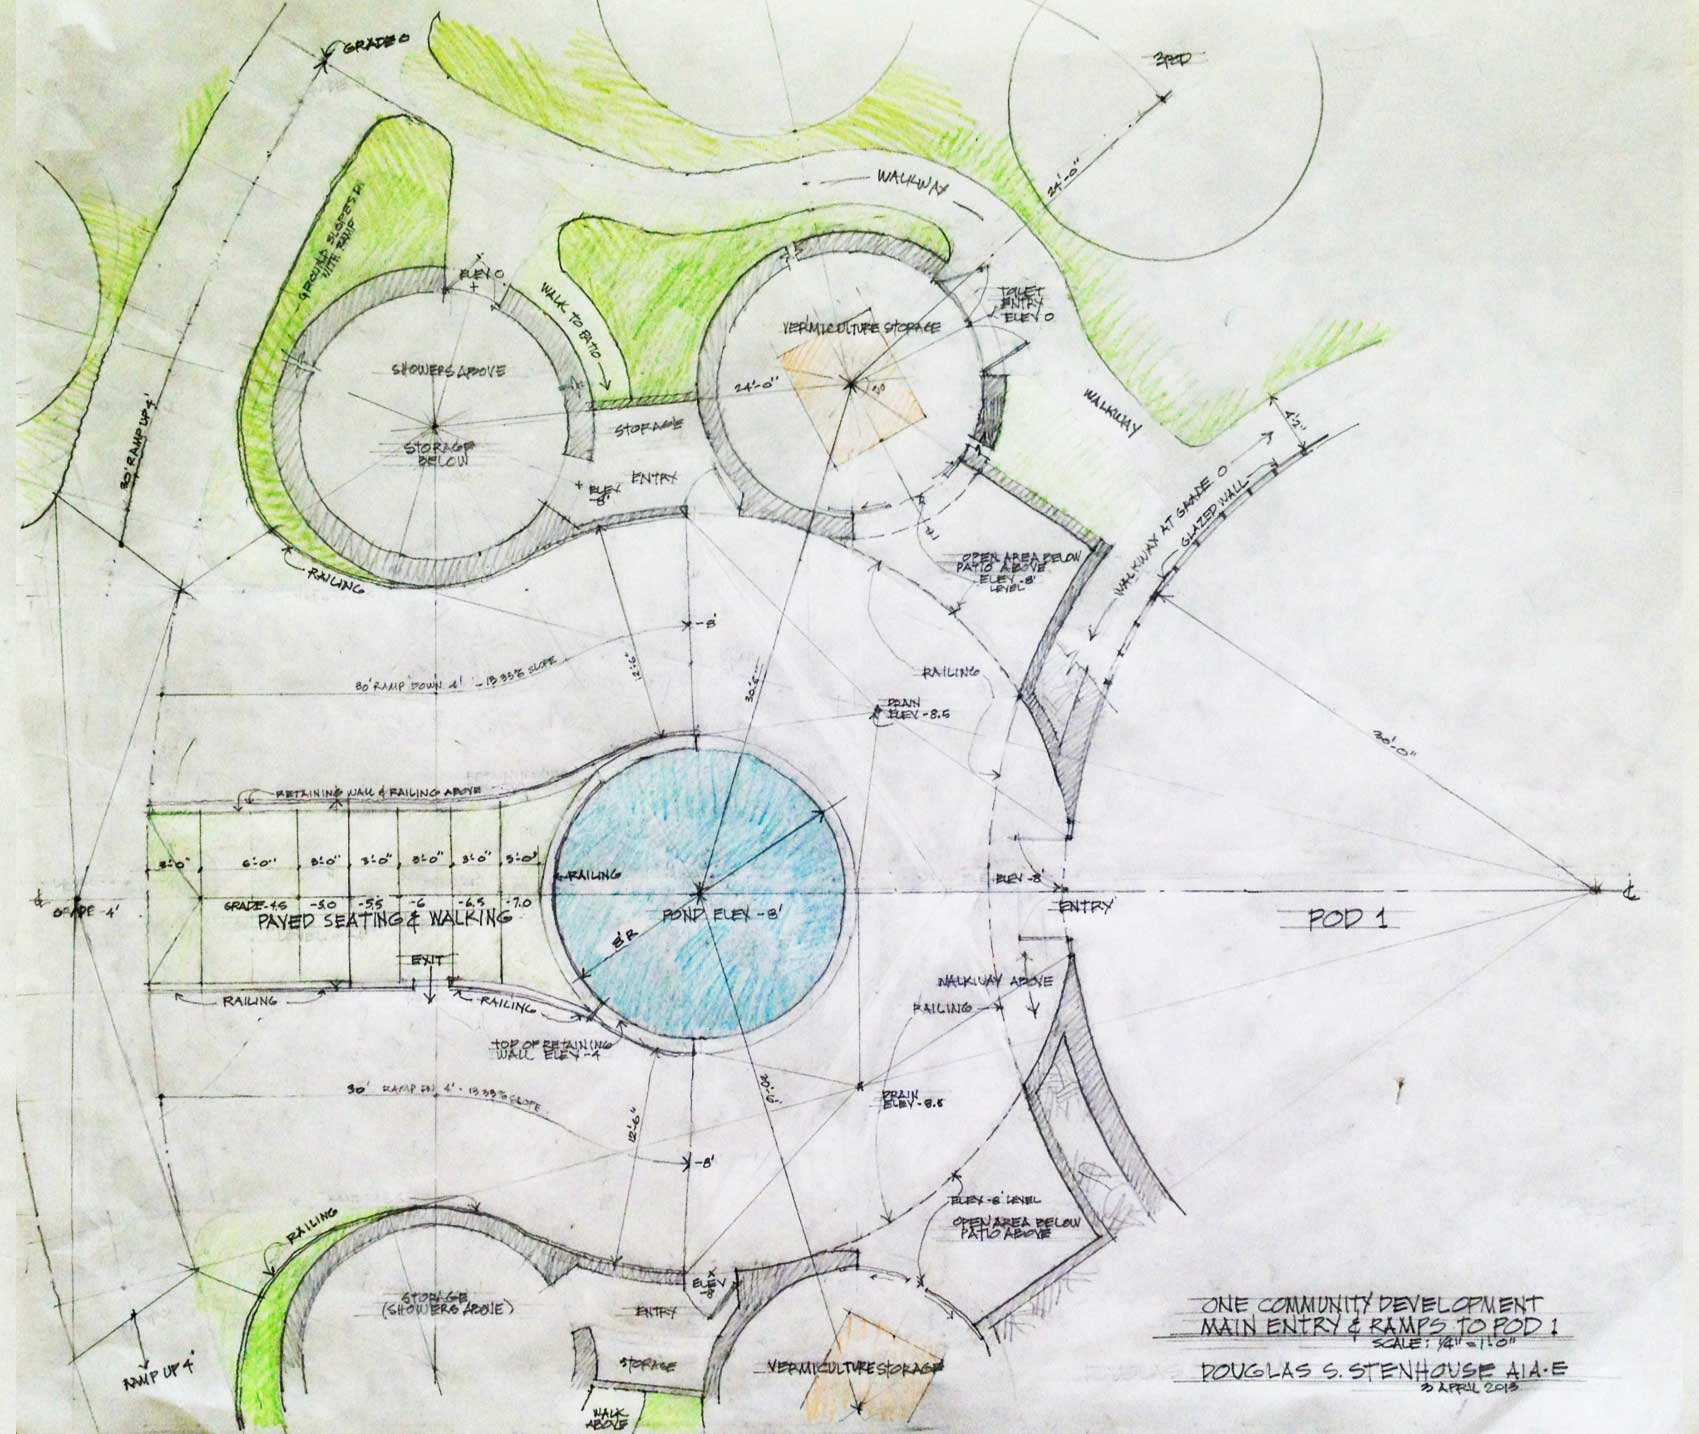 Basic Dome Home S Interior Plans: Open Source Earthbag Village